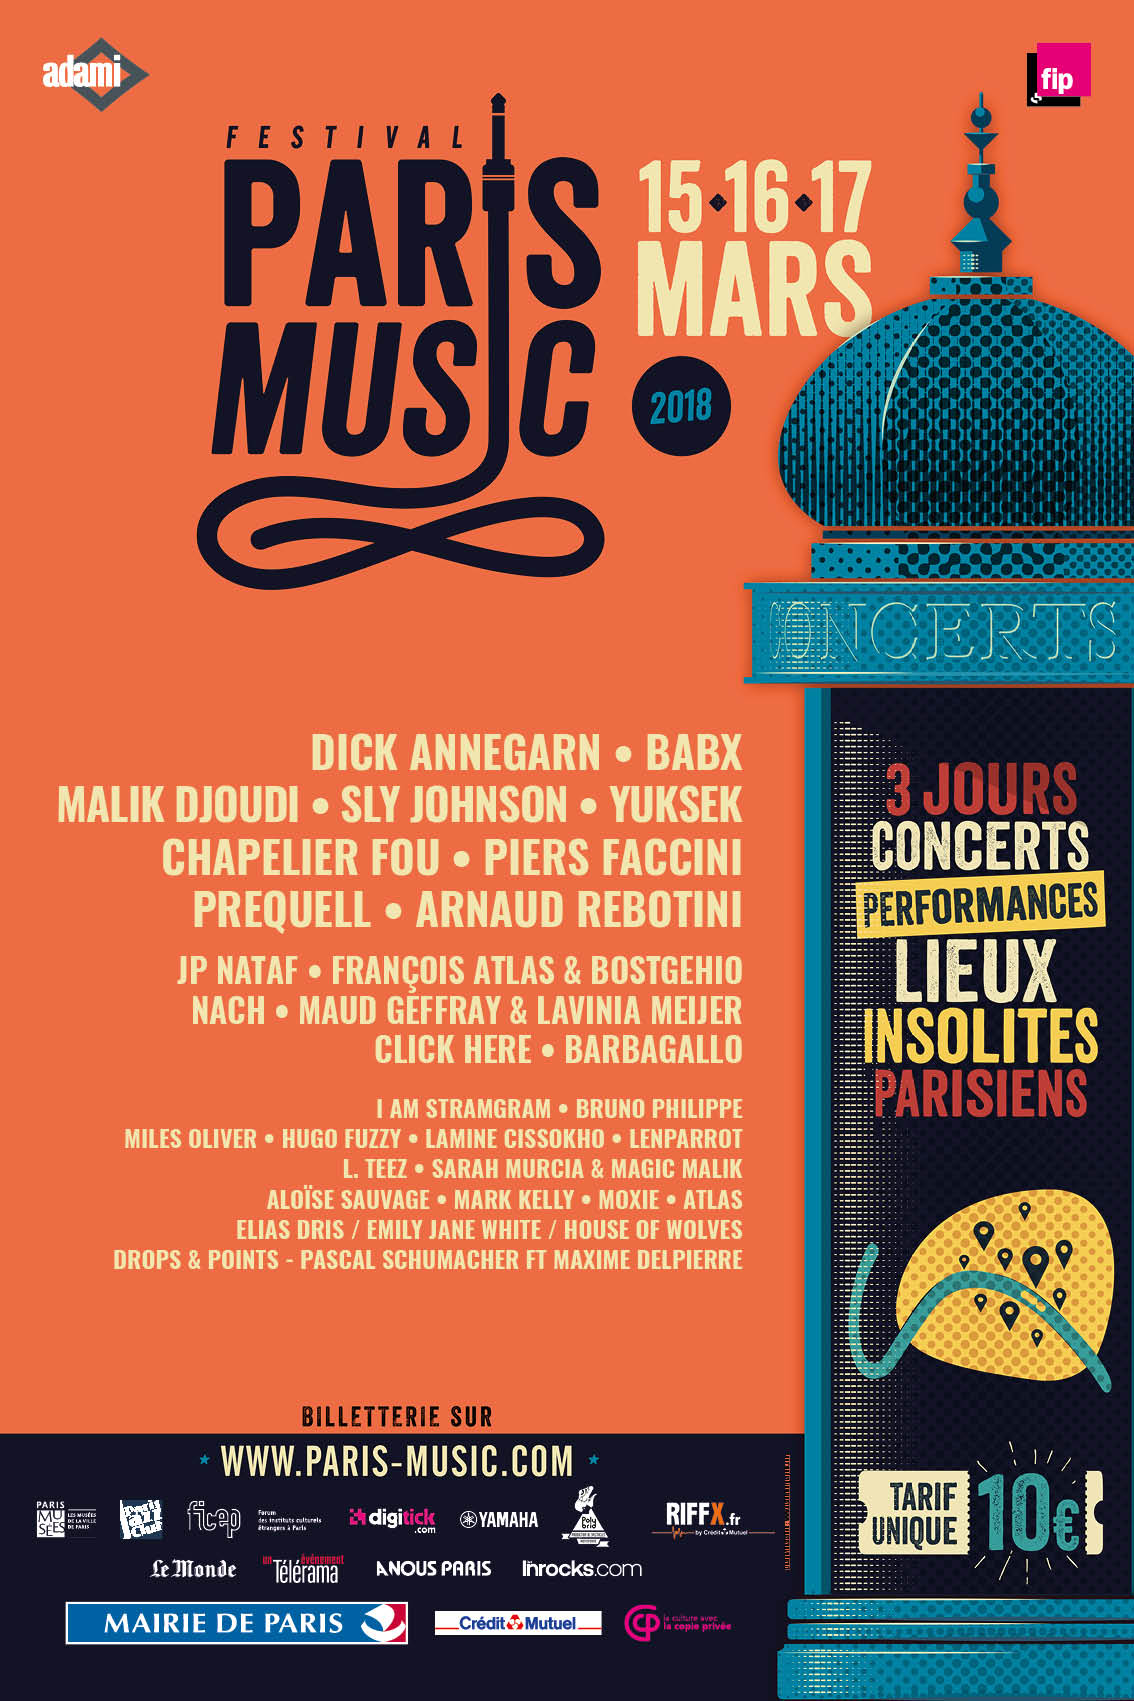 Festival PARIS MUSIC